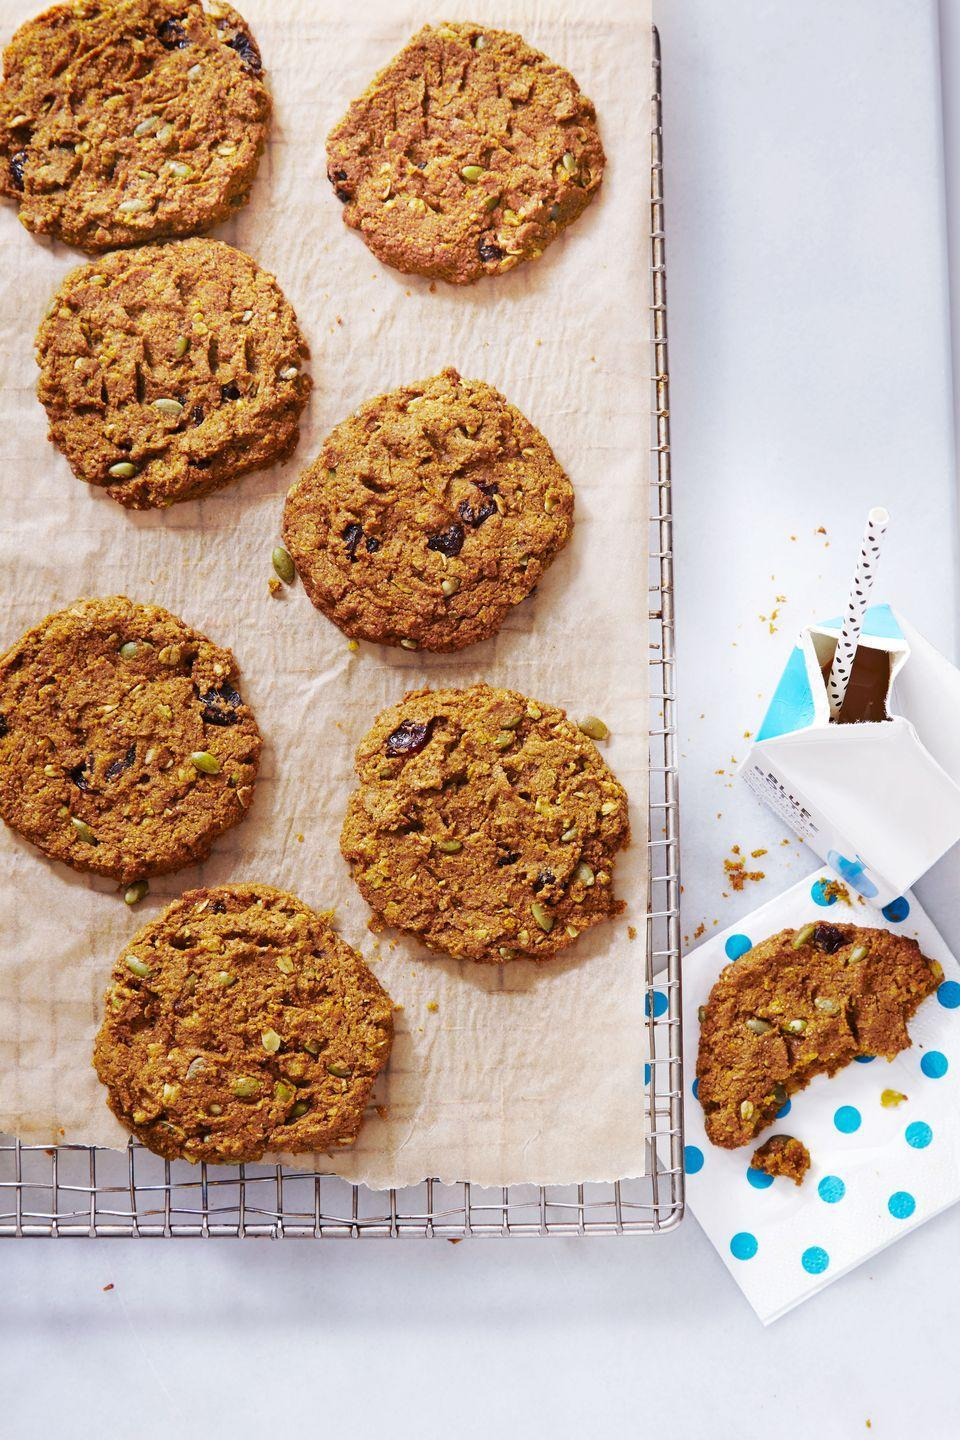 """<p>Baked with protein and fiber, these are some cookies that are 100% approved for breakfast.</p><p><em><a href=""""https://www.goodhousekeeping.com/food-recipes/dessert/a35274/pumpkin-cherry-breakfast-cookies/"""" rel=""""nofollow noopener"""" target=""""_blank"""" data-ylk=""""slk:Get the recipe for Pumpkin-Cherry Breakfast Cookies »"""" class=""""link rapid-noclick-resp"""">Get the recipe for Pumpkin-Cherry Breakfast Cookies »</a></em> </p>"""